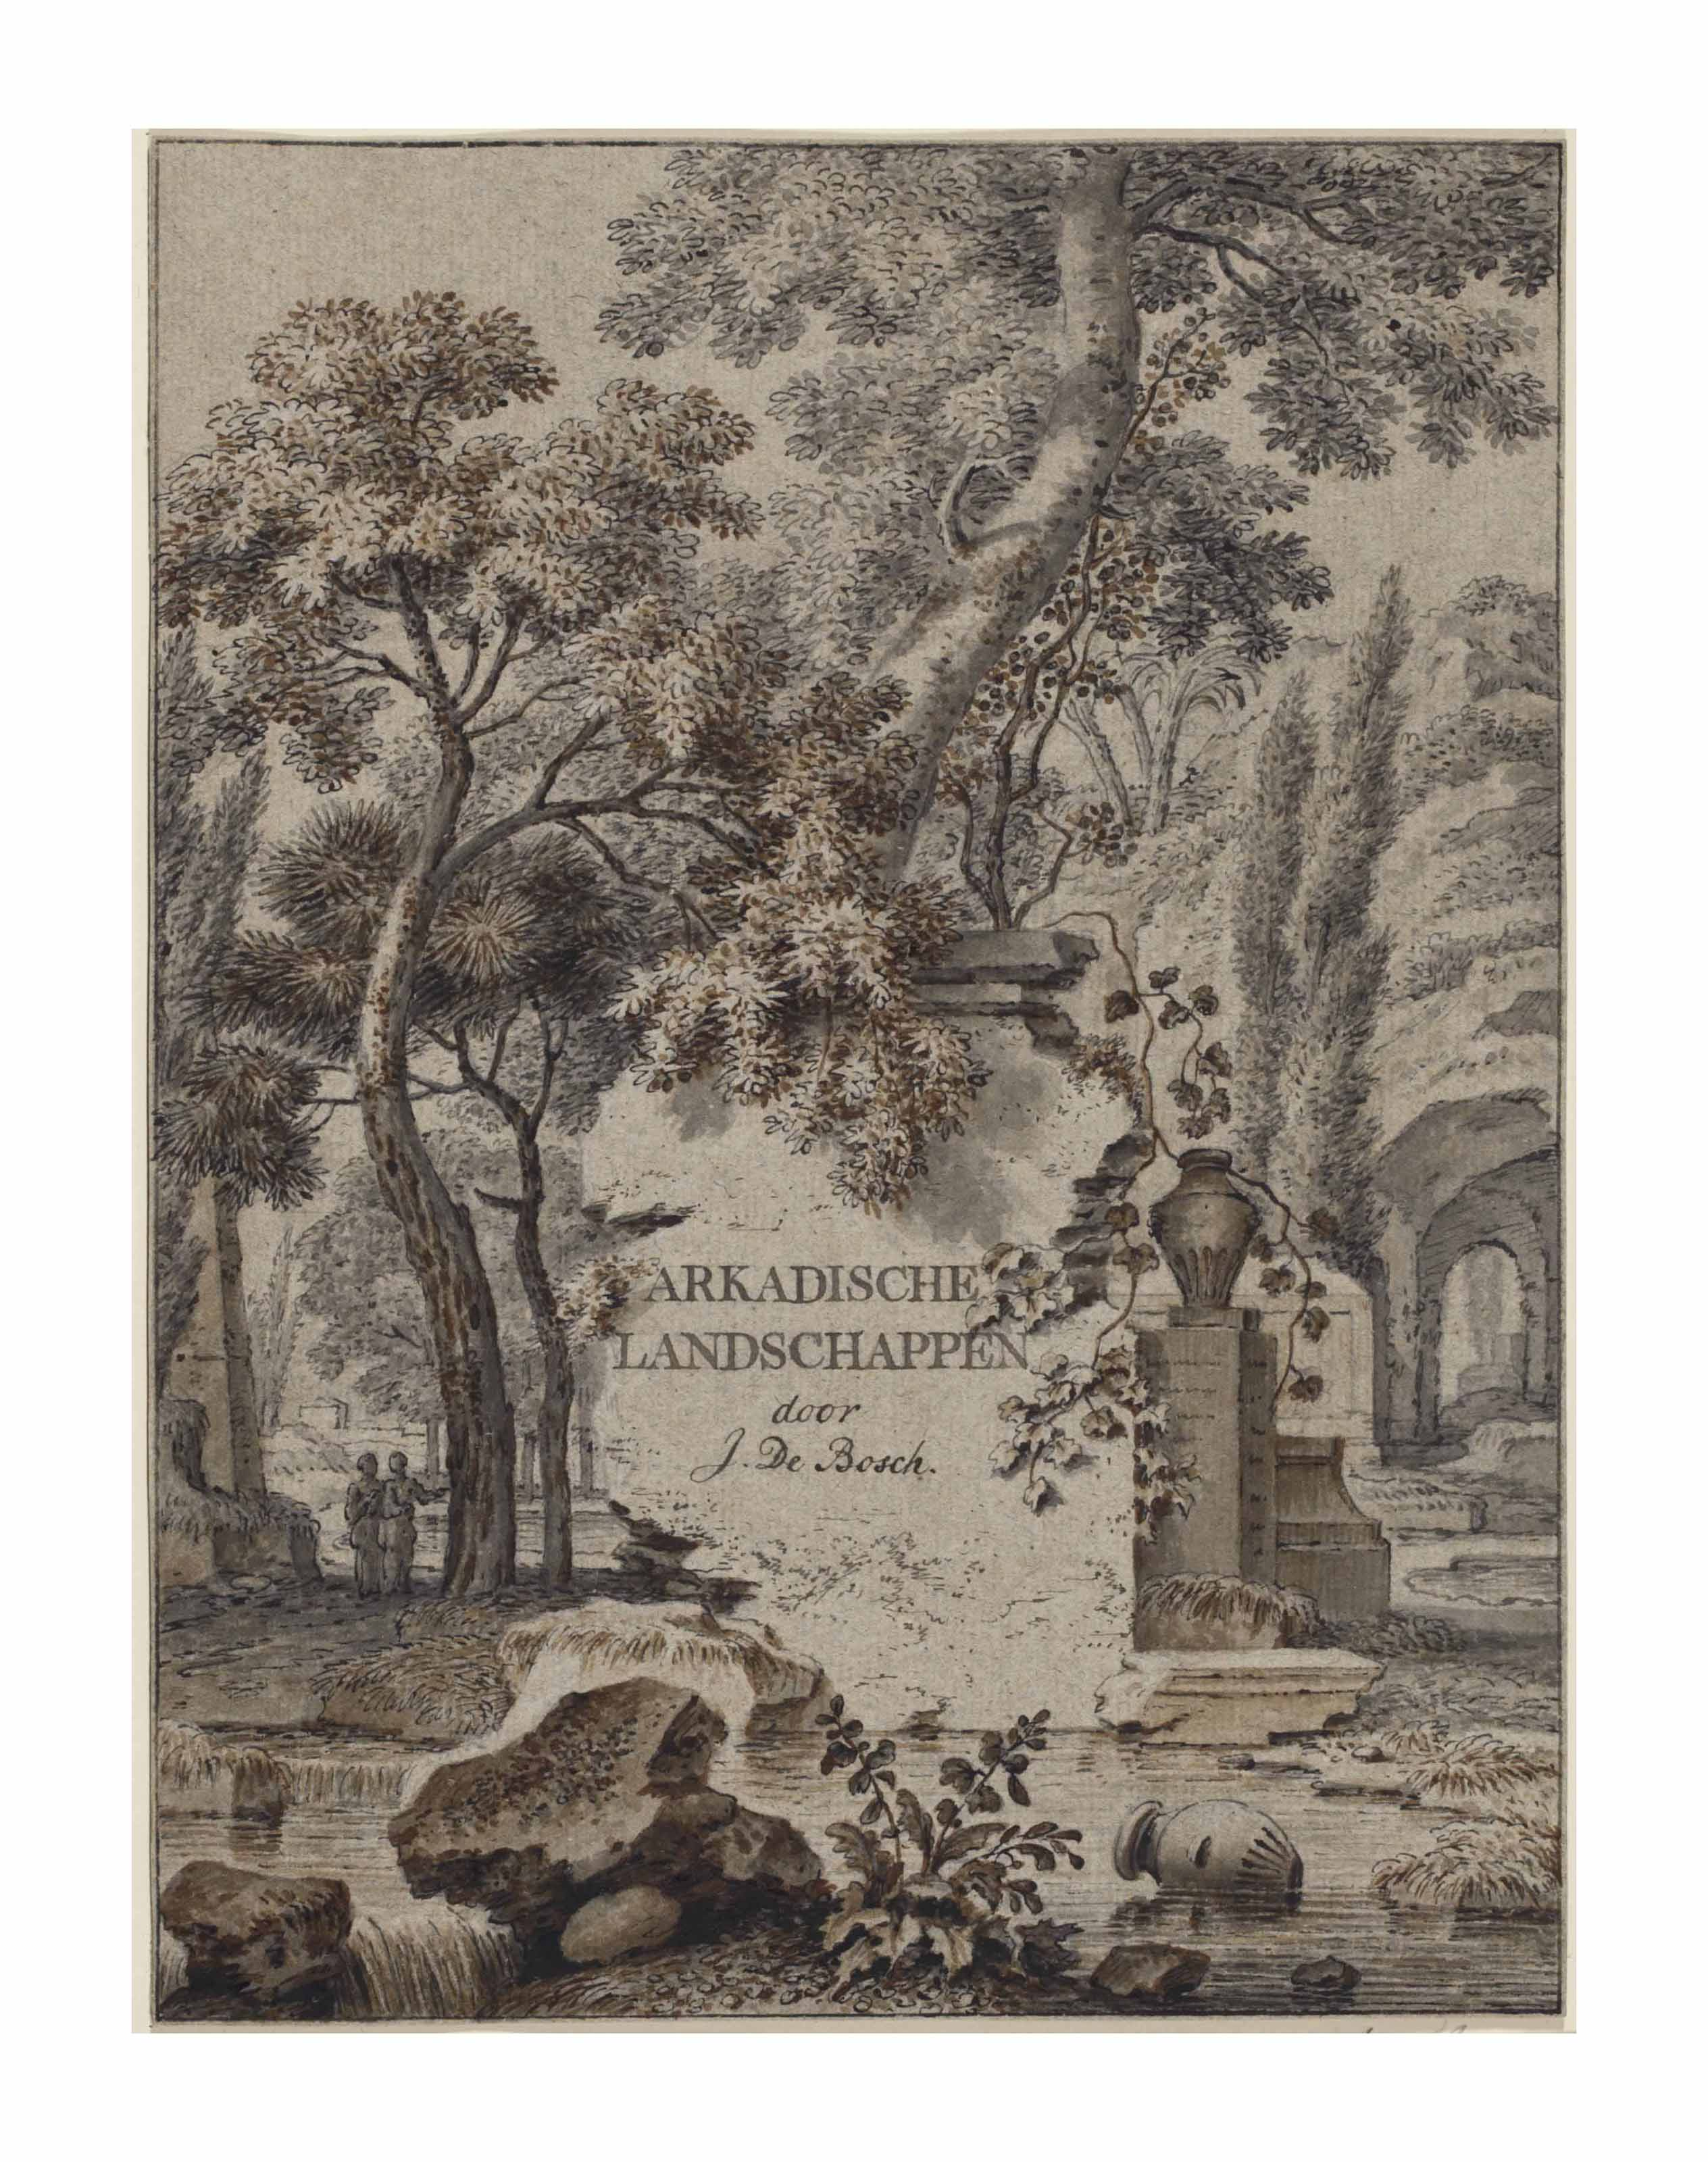 Design for a title page: 'Arkadische landschappen'